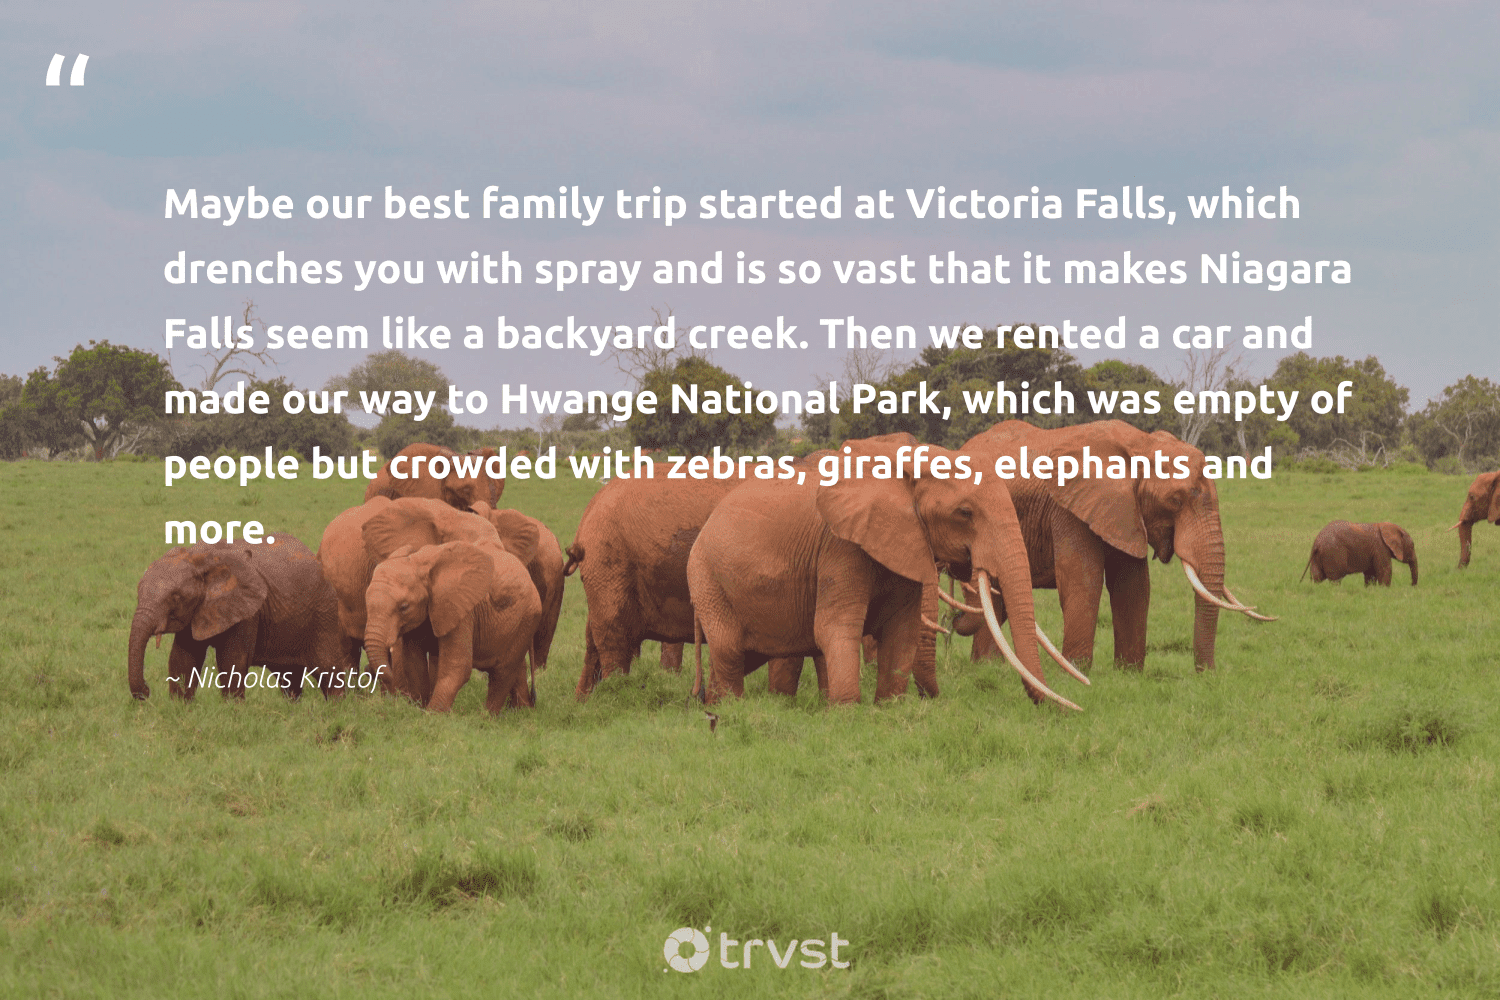 """""""Maybe our best family trip started at Victoria Falls, which drenches you with spray and is so vast that it makes Niagara Falls seem like a backyard creek. Then we rented a car and made our way to Hwange National Park, which was empty of people but crowded with zebras, giraffes, elephants and more.""""  - Nicholas Kristof #trvst #quotes #family #elephants #endangered #bethechange #endangeredspecies #dosomething #wildanimals #collectiveaction #wildgeography #beinspired"""